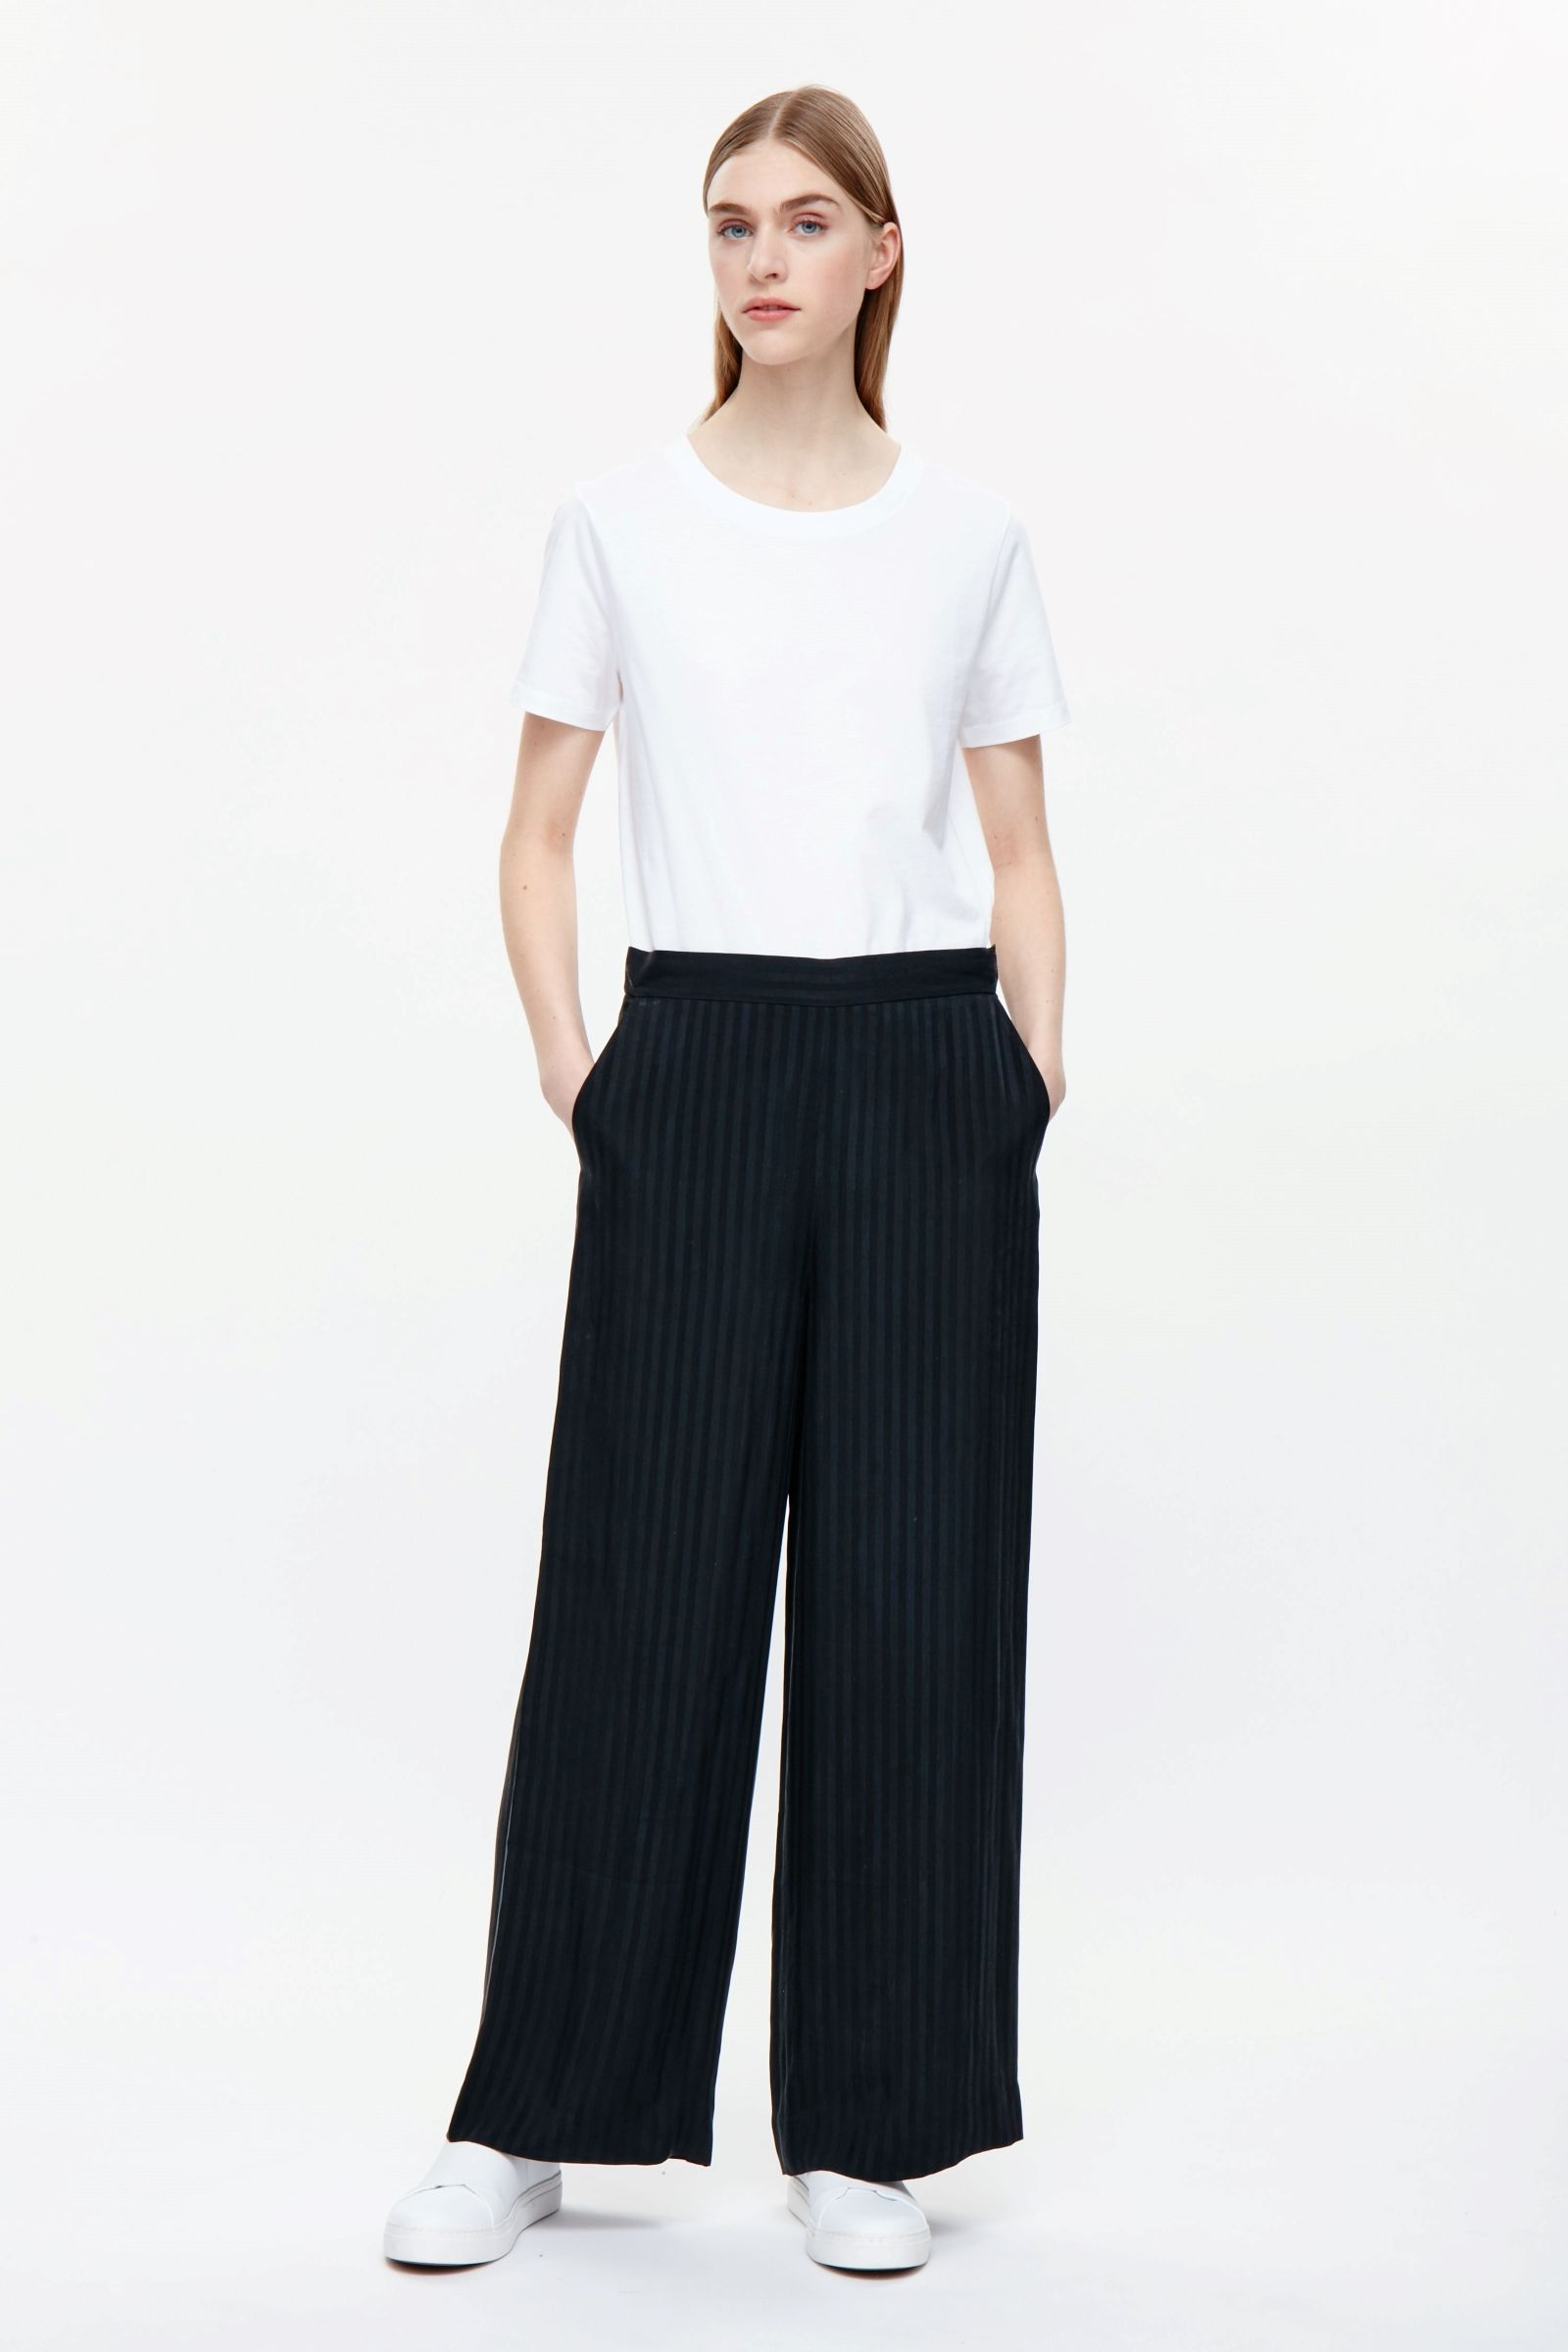 groß auswahl Online kaufen glatt COS image 1 of Striped wide-leg trousers in Black ...